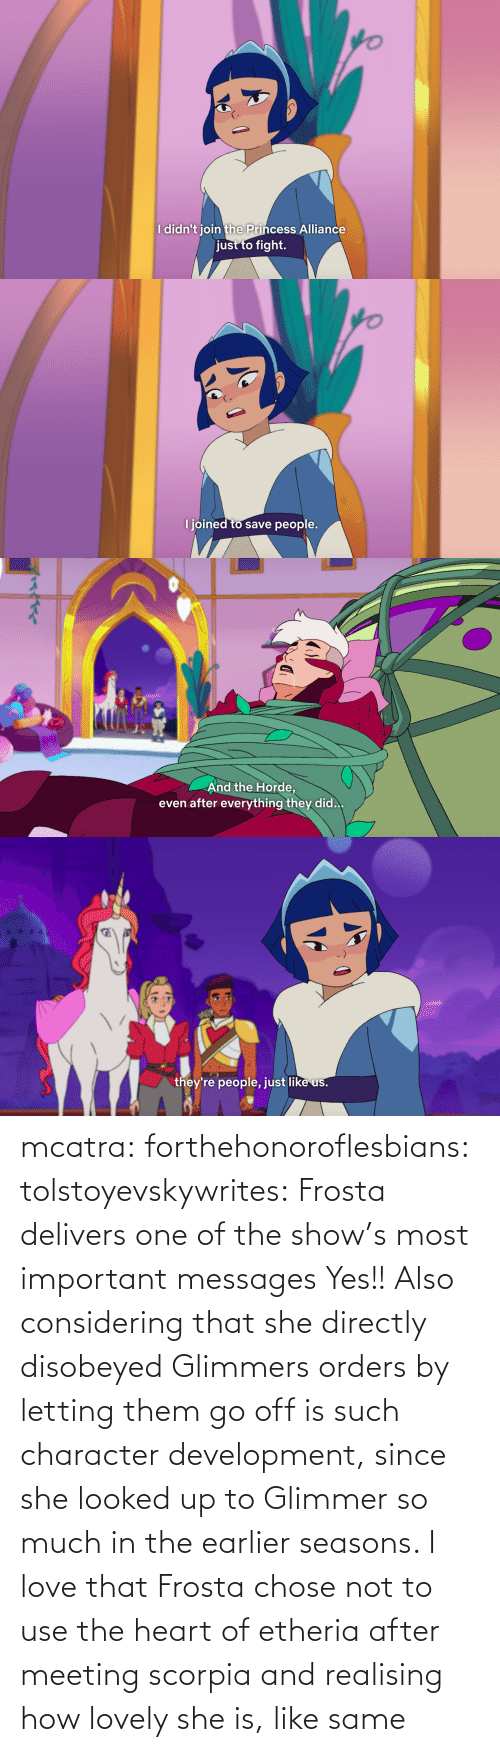 Messages: mcatra: forthehonoroflesbians:   tolstoyevskywrites:  Frosta delivers one of the show's most important messages  Yes!! Also considering that she directly disobeyed Glimmers orders by letting them go off is such character development, since she looked up to Glimmer so much in the earlier seasons.    I love that Frosta chose not to use the heart of etheria after meeting scorpia and realising how lovely she is, like same